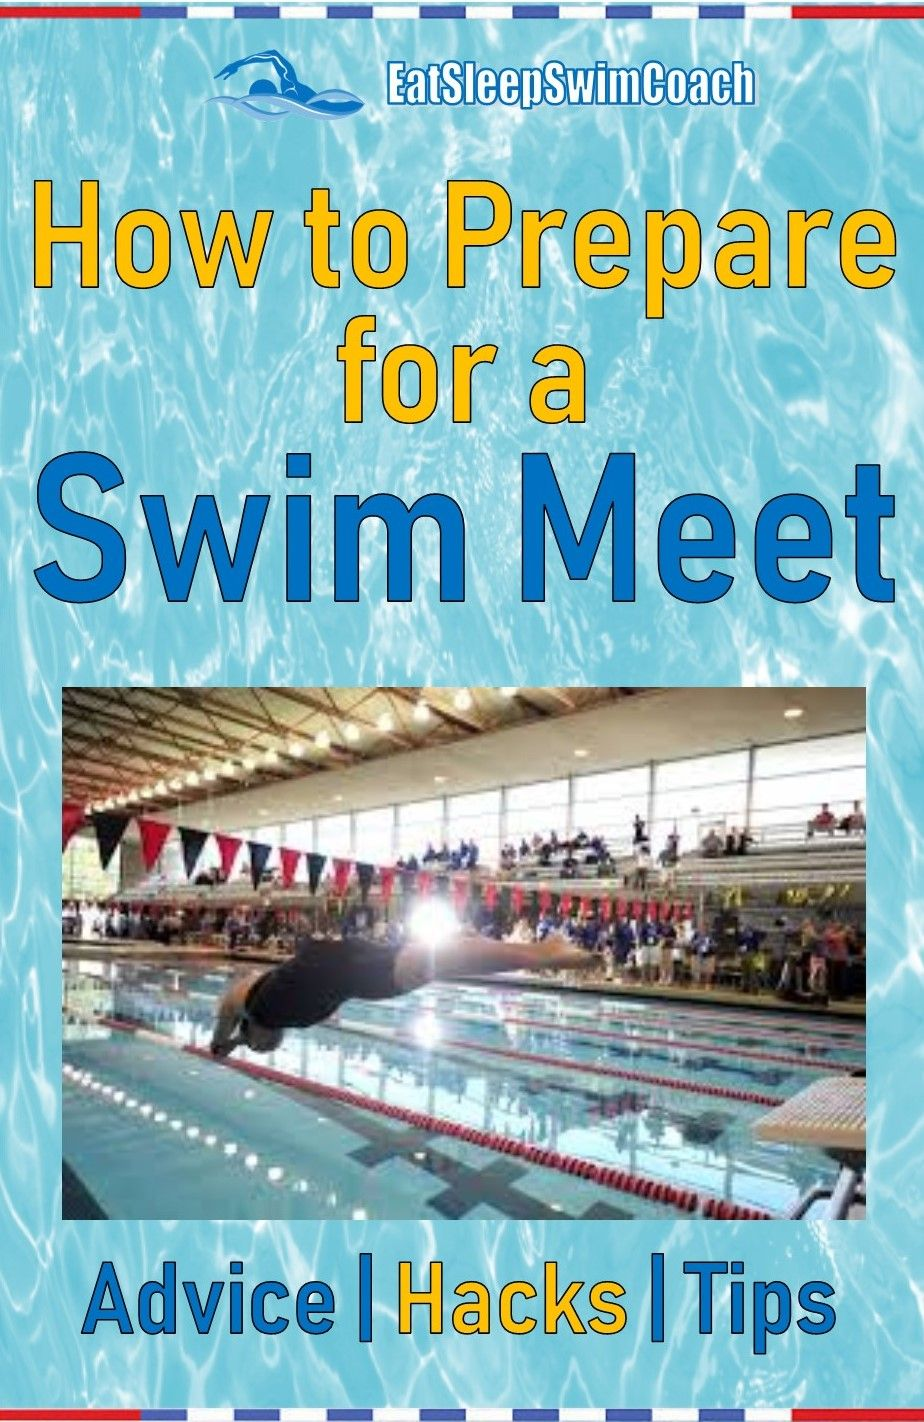 How To Prepare For A Swim Meet Eatsleepswimcoach Swim Meet Swimming Workout Competitive Swimming Workout